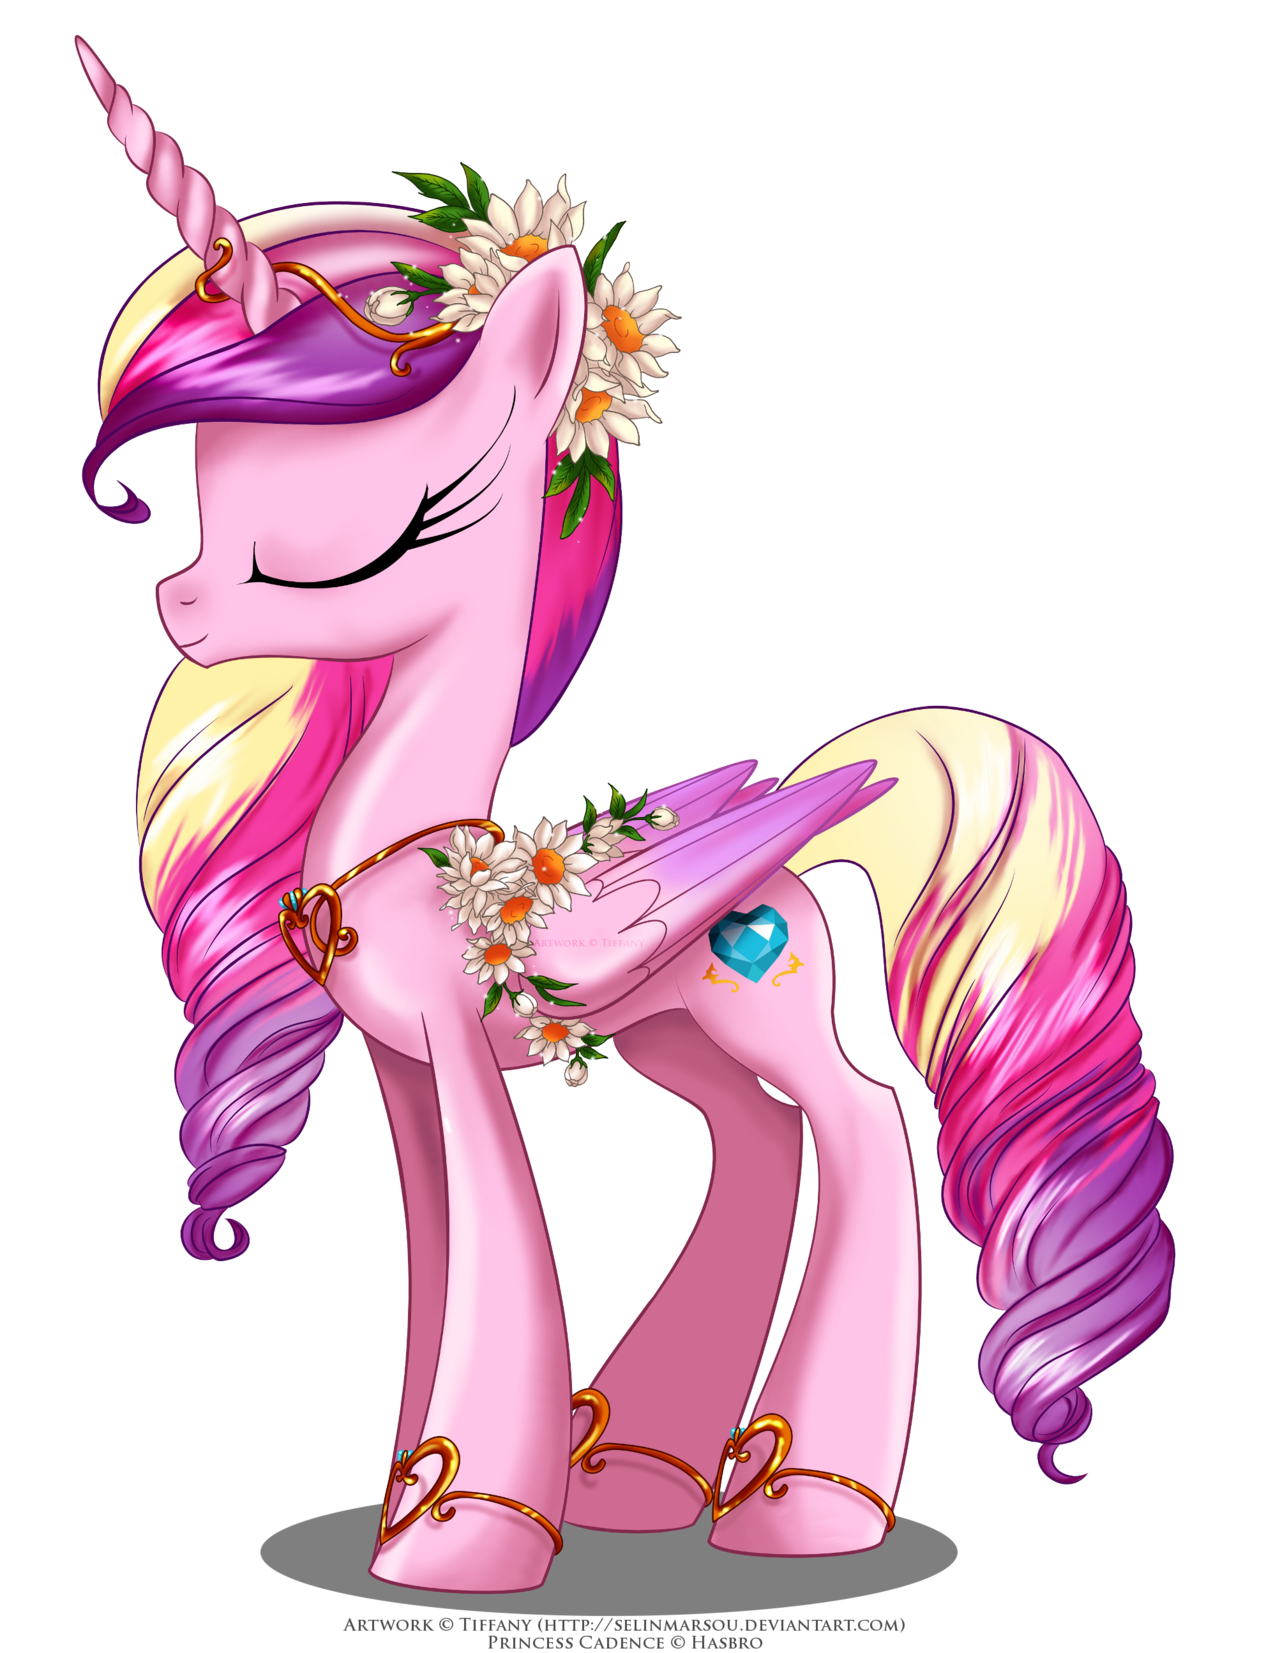 May festival pony cadence by - My little pony cadence ...